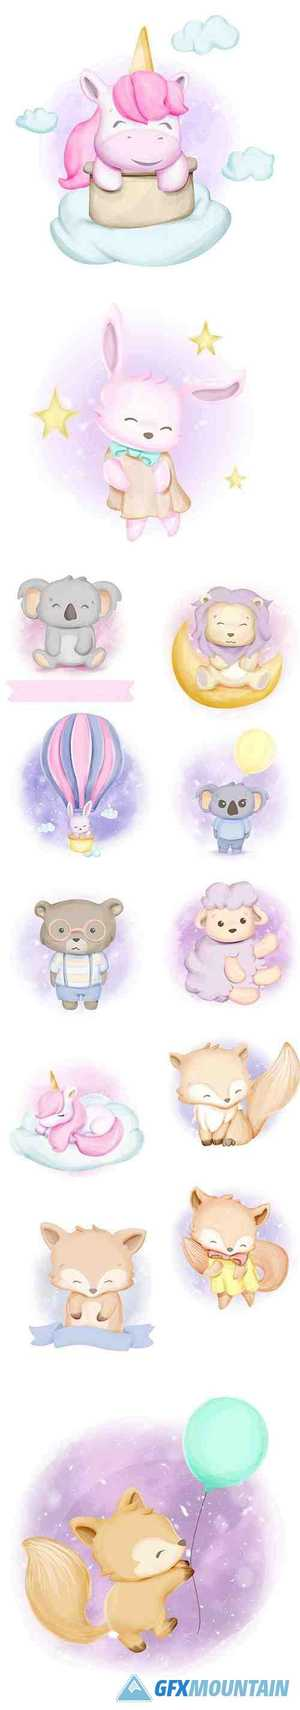 Watercolor Cute Baby Animals Illustration Set